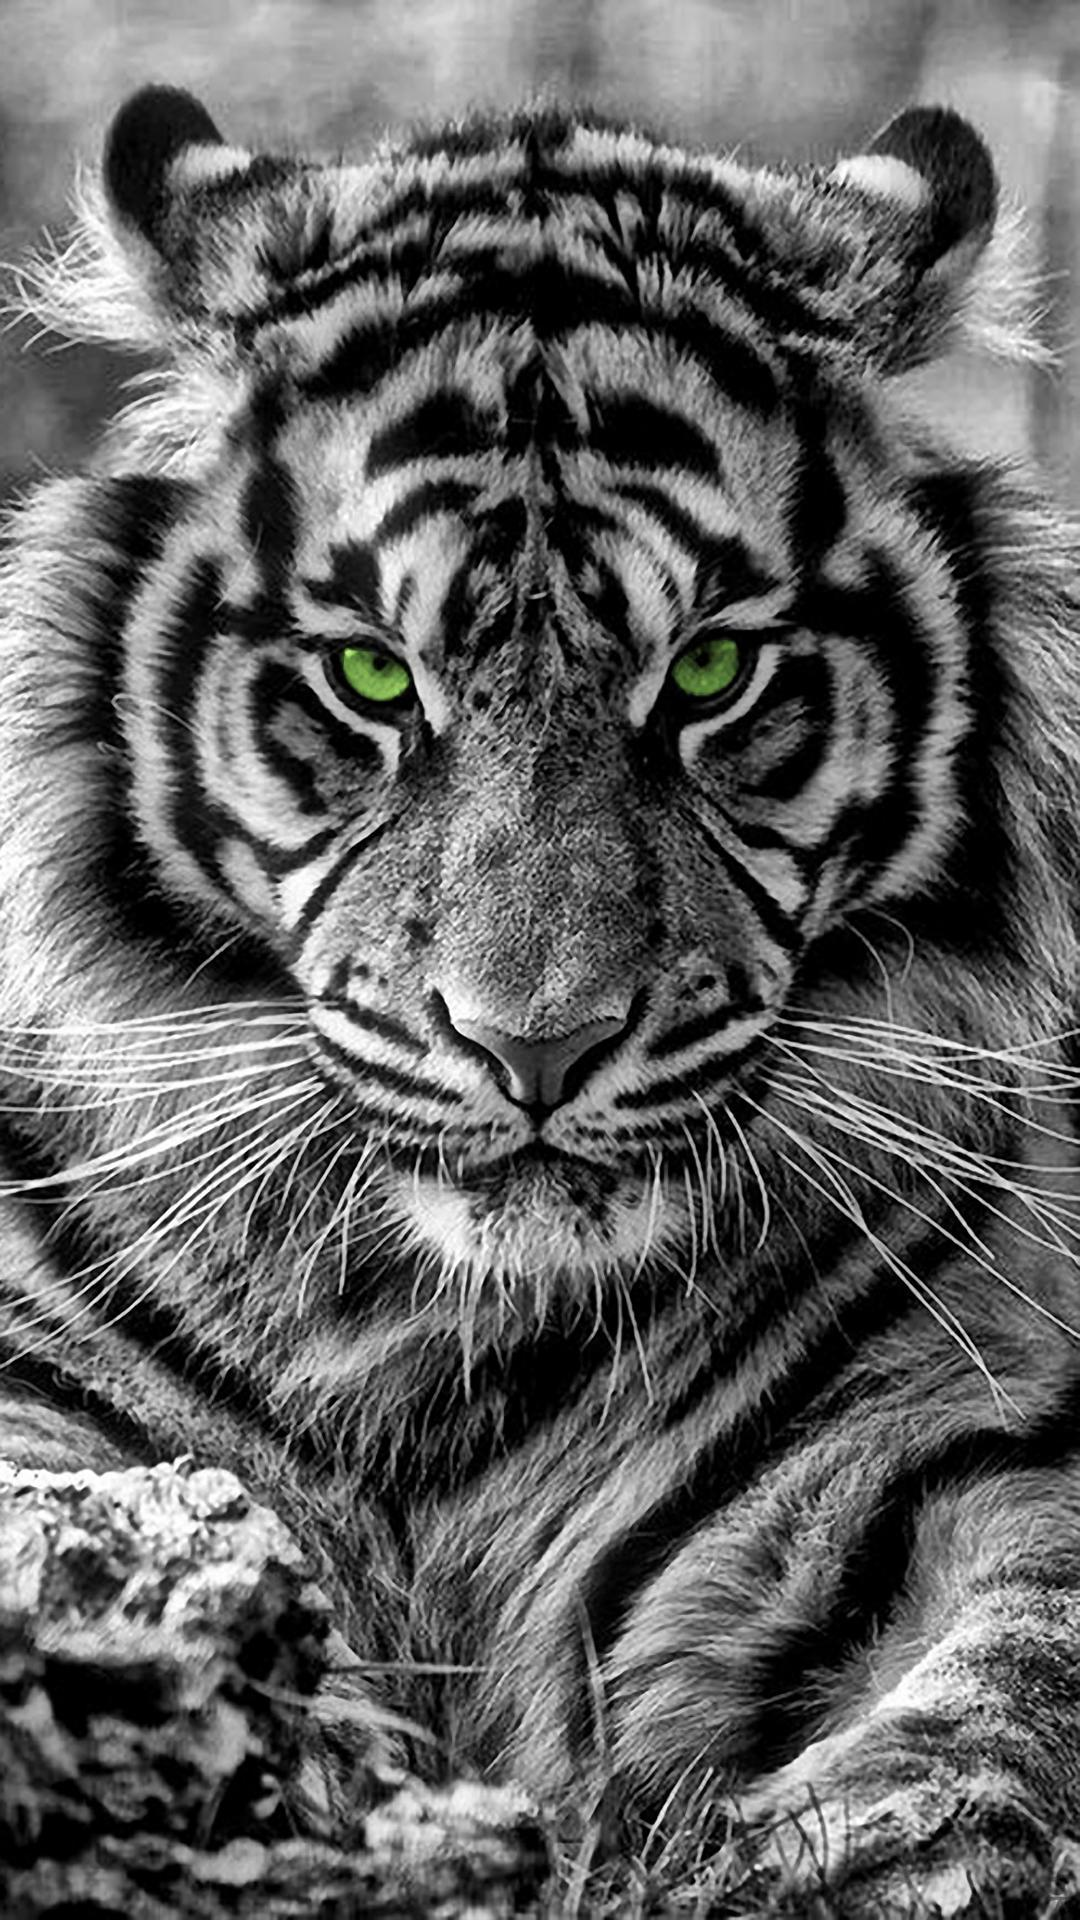 White Tiger Iphone Wallpapers Top Free White Tiger Iphone Backgrounds Wallpaperaccess